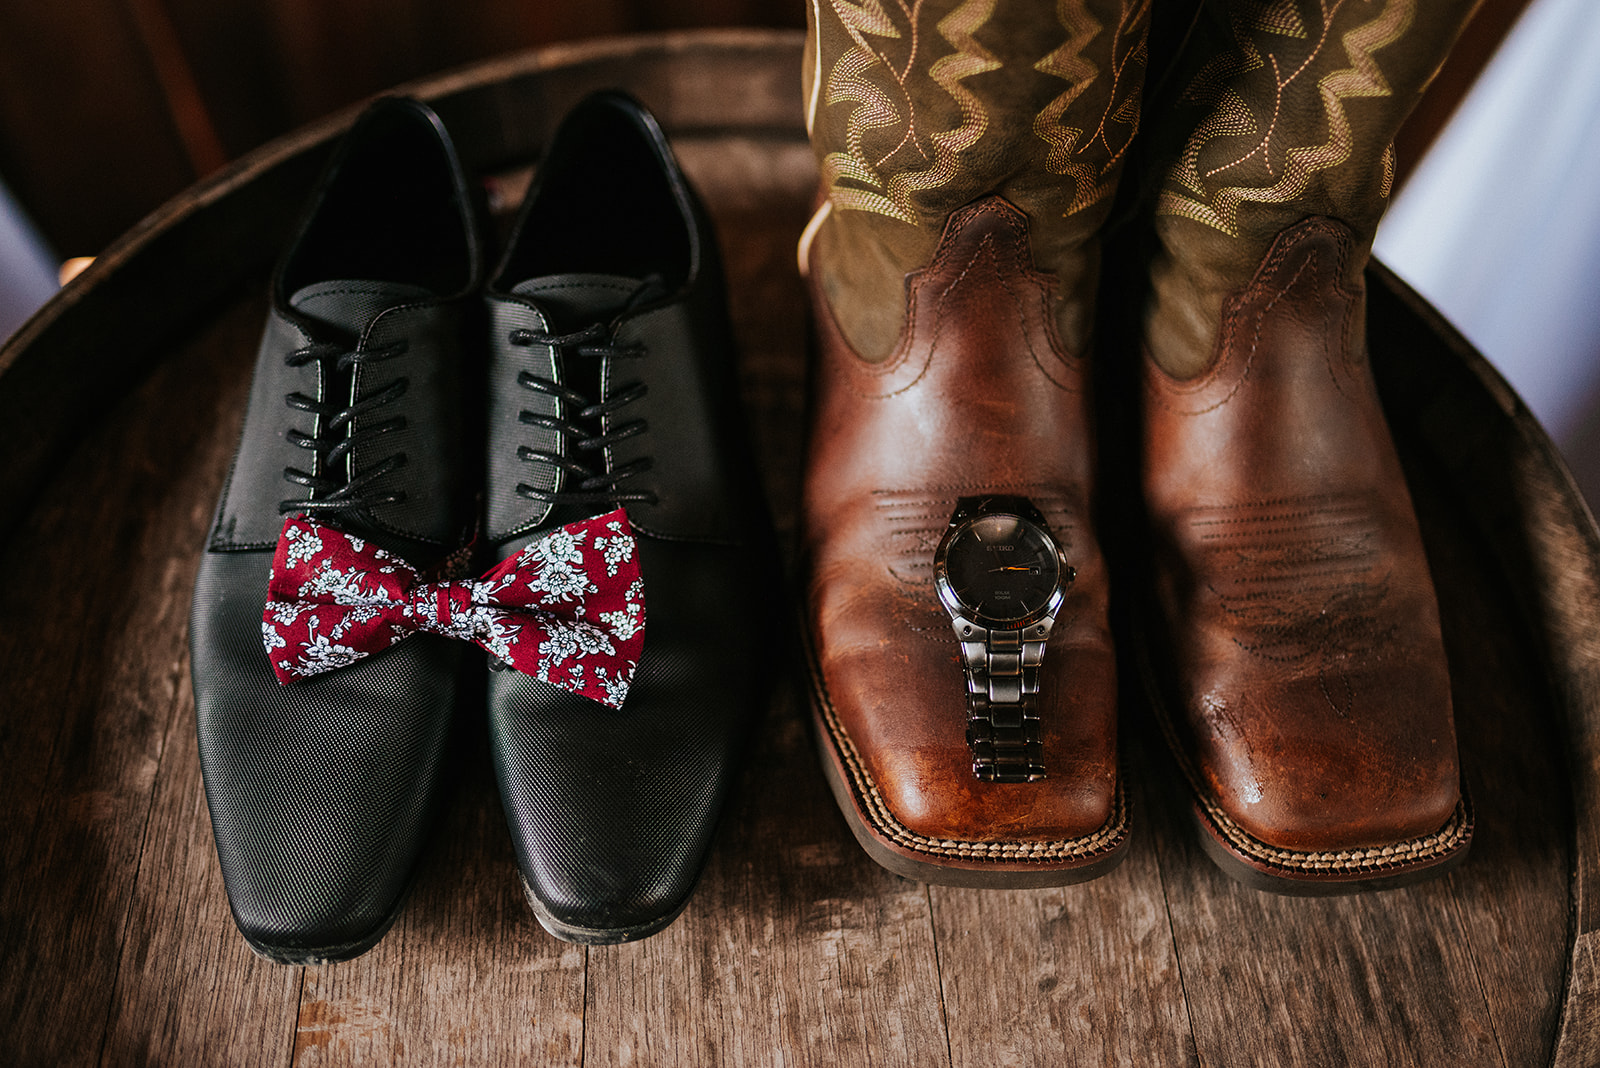 overthevineswisconsinwedding_0217.jpg